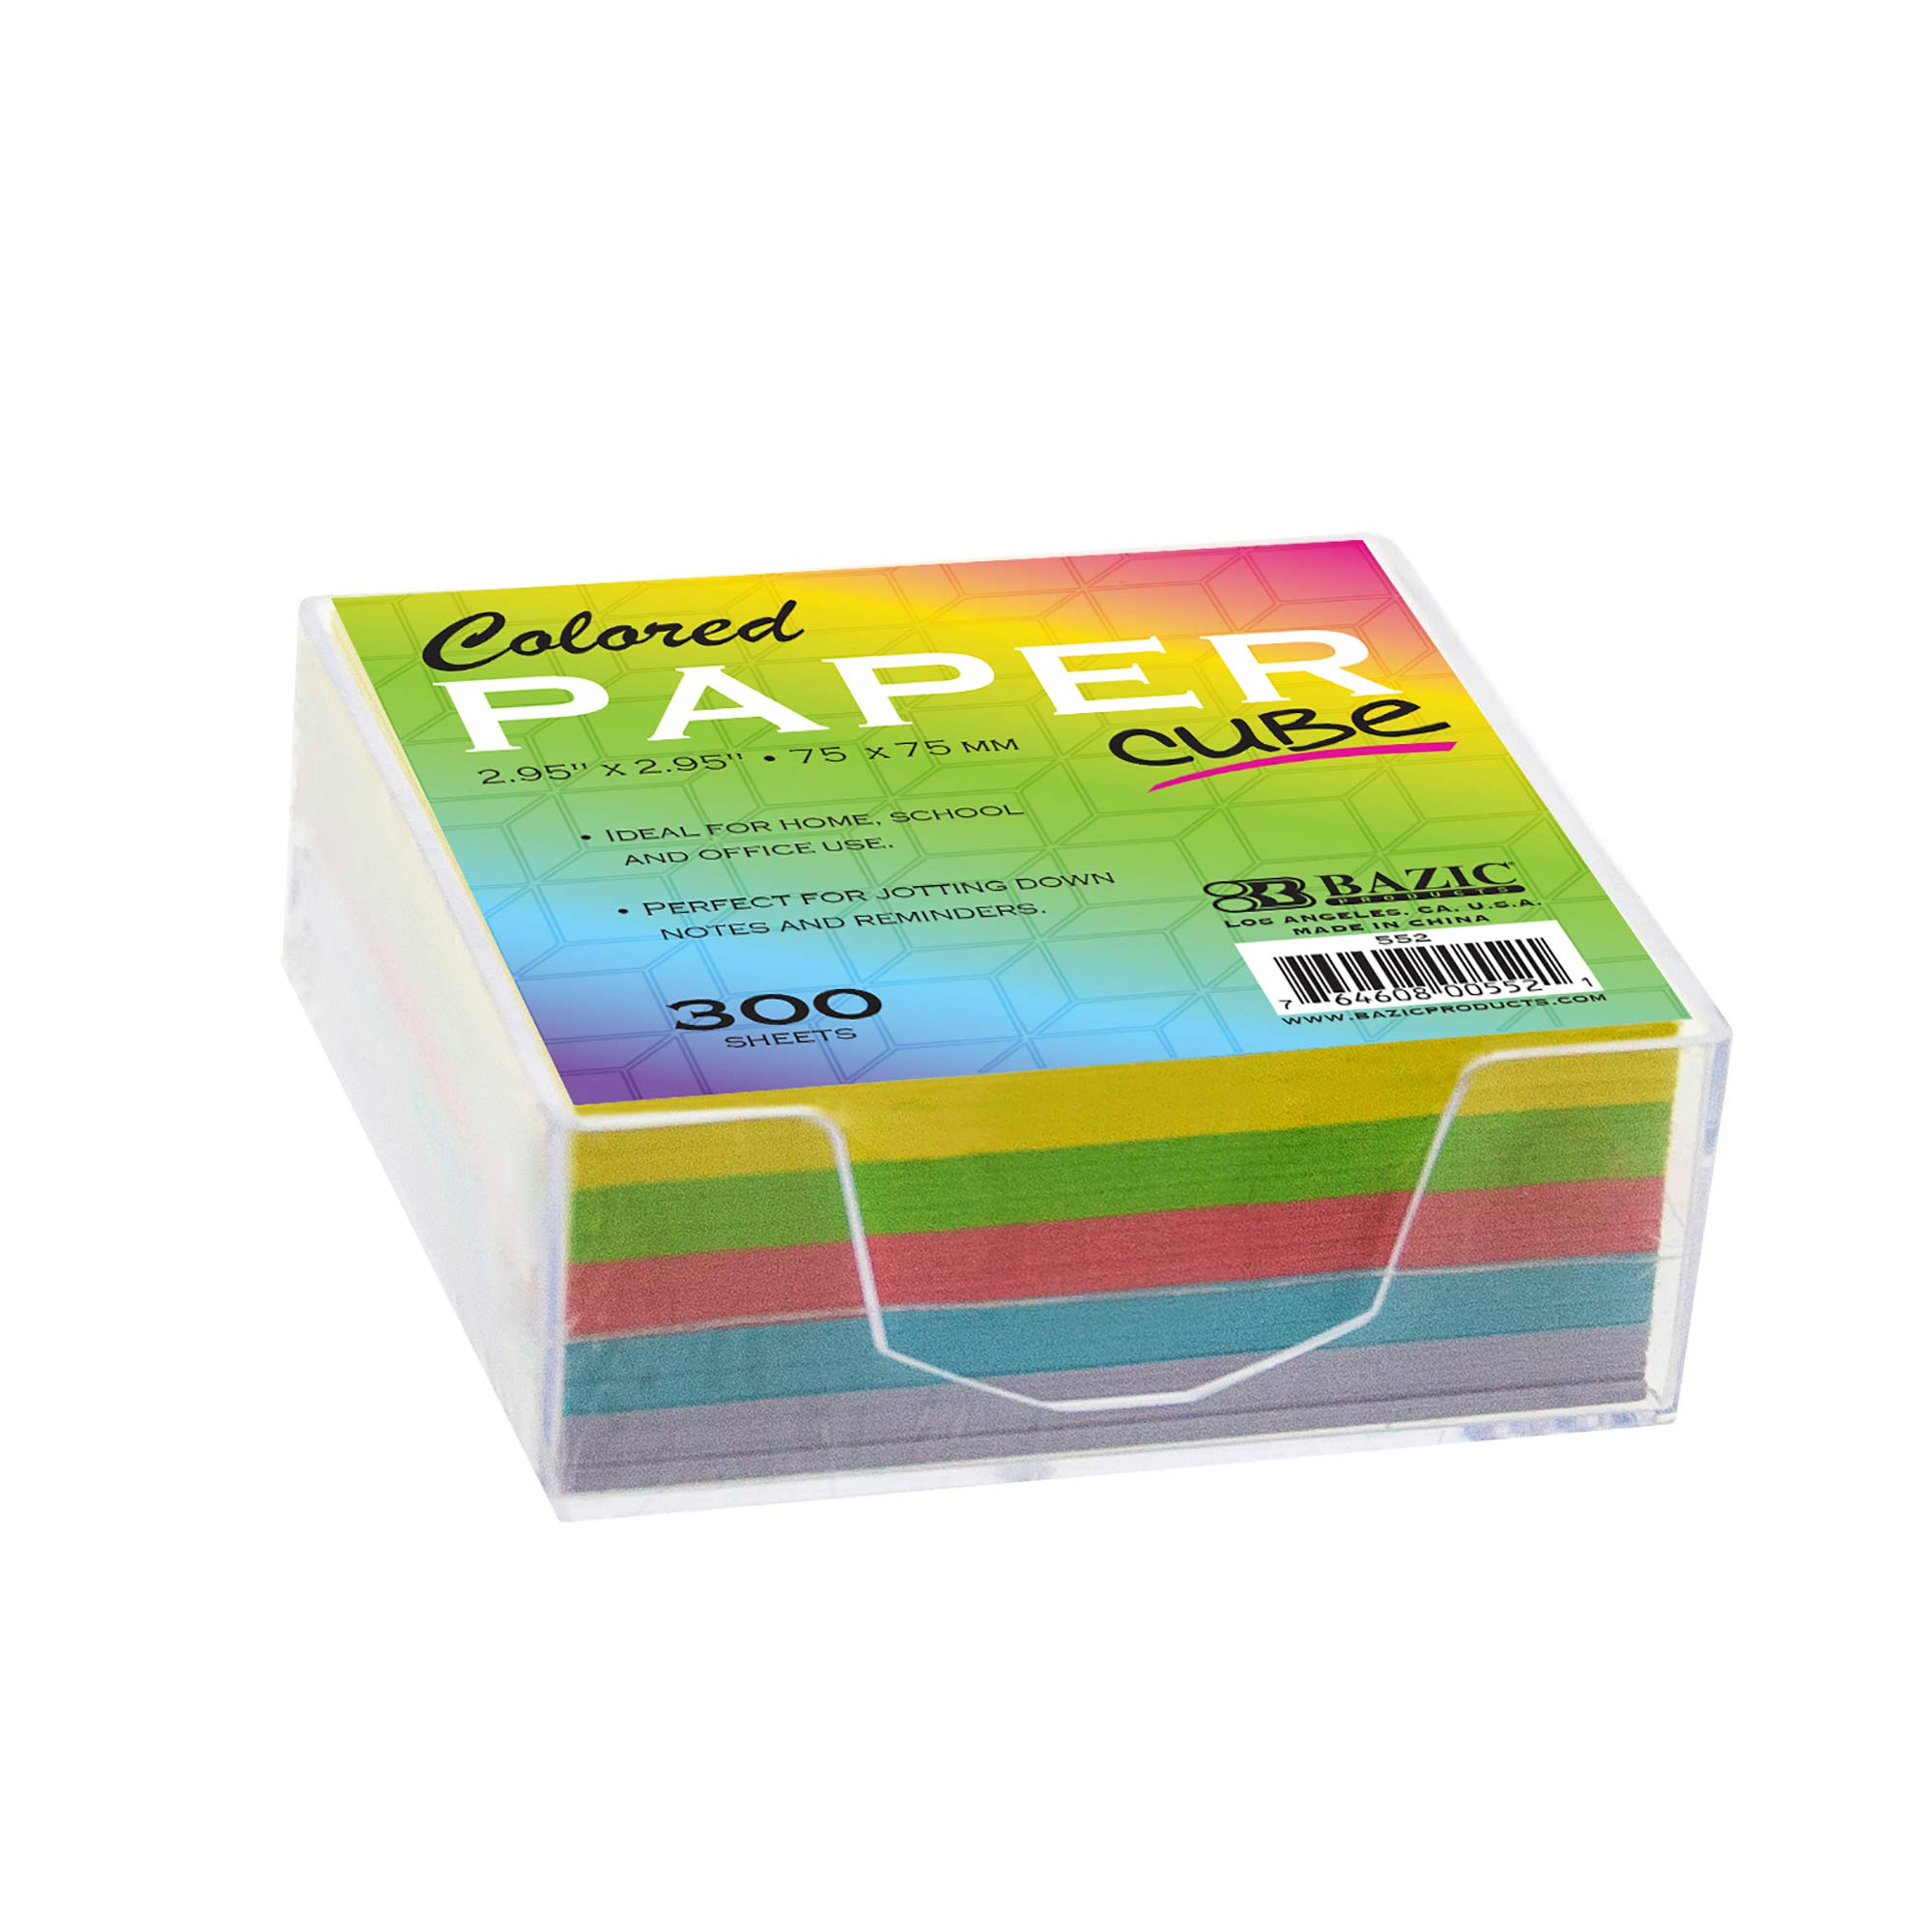 BAZIC 75mm X 75mm 300 Ct. Color Paper Cube w/Tray (Case of 36) by B BAZIC PRODUCTS